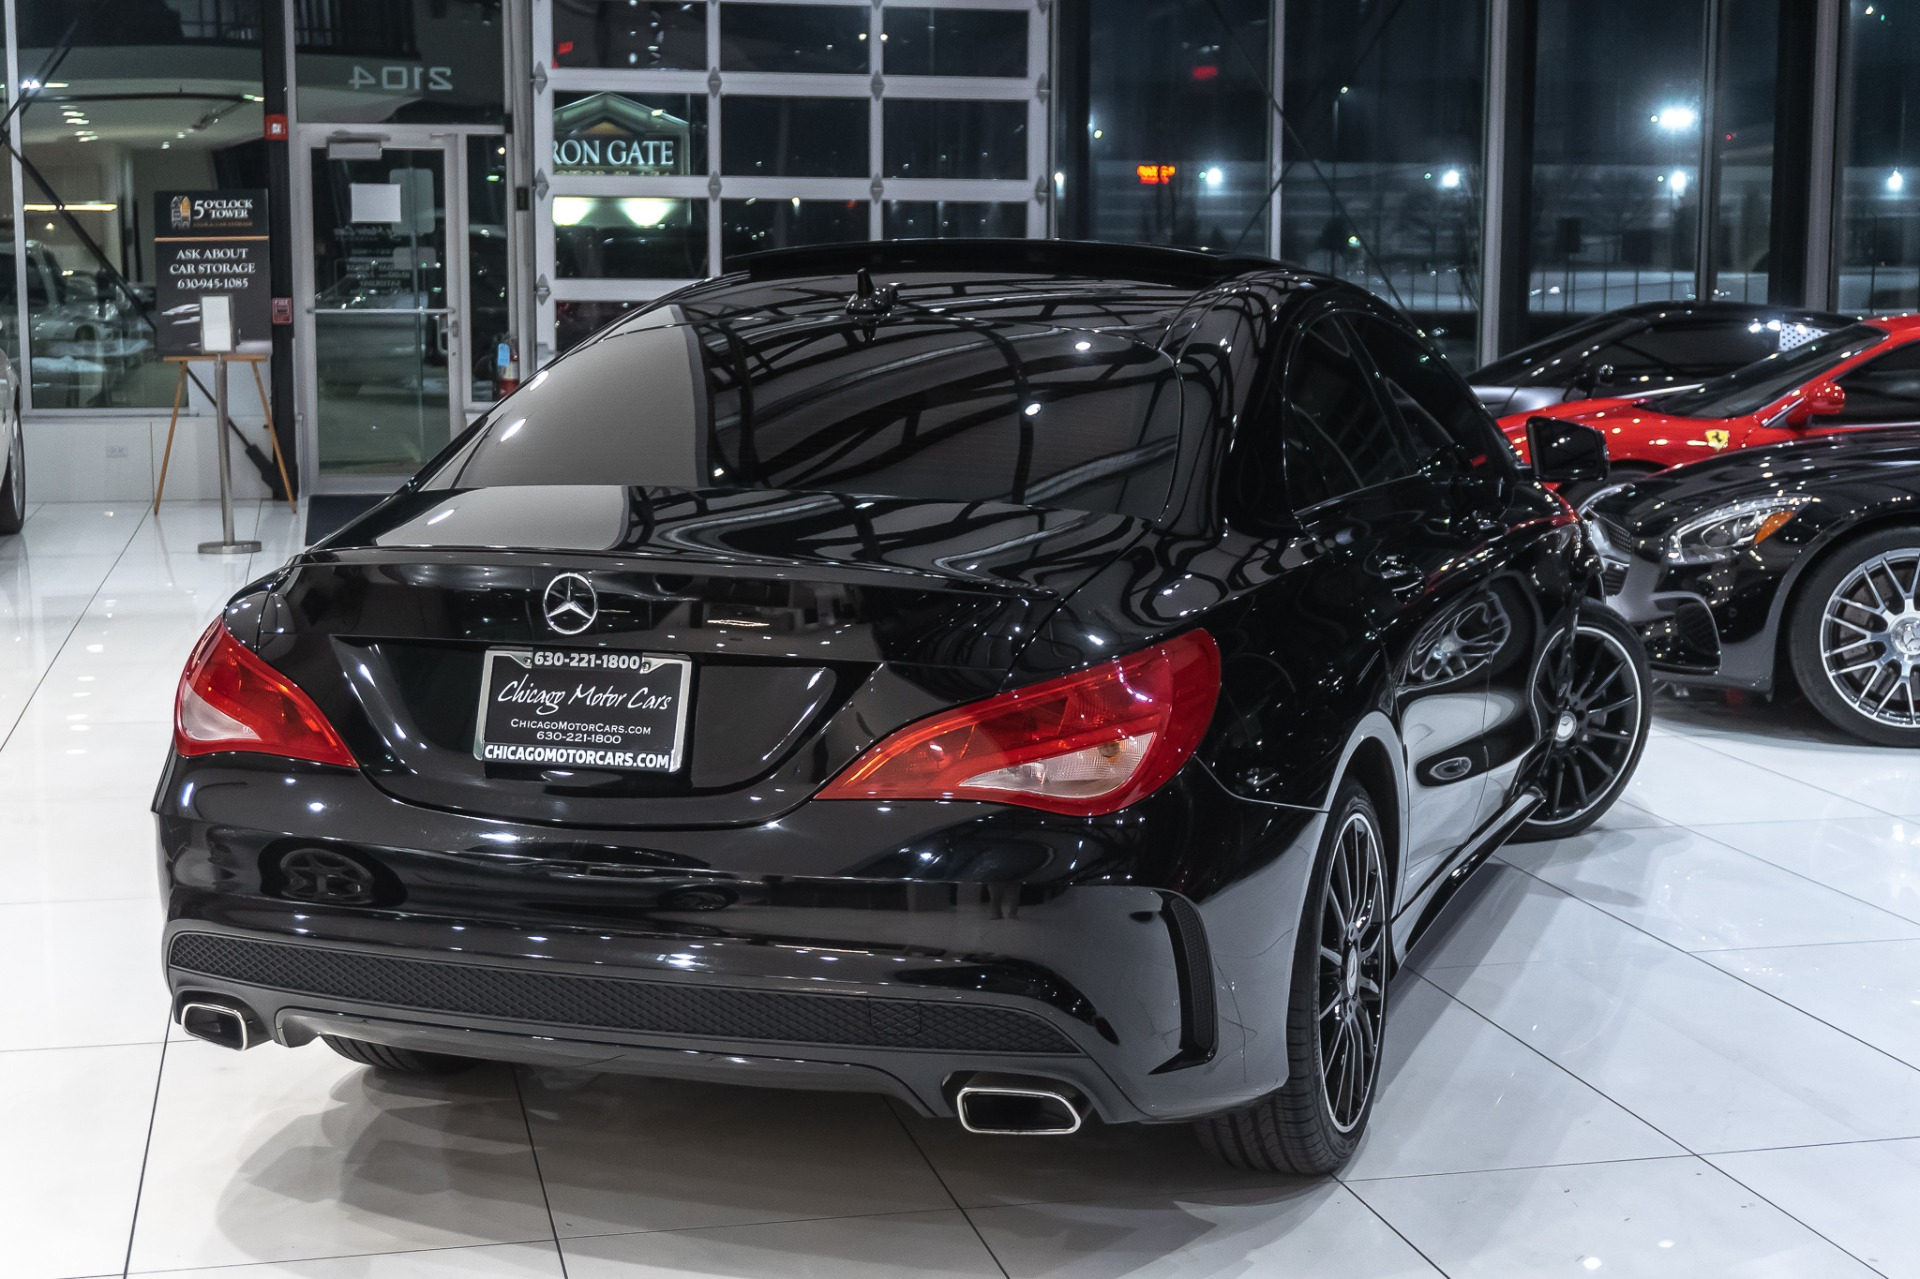 Used-2016-Mercedes-Benz-CLA250-4MATIC-AMG-APPEARANCE-PKG-PANO-NAV-DRIVER-ASSISTANCE